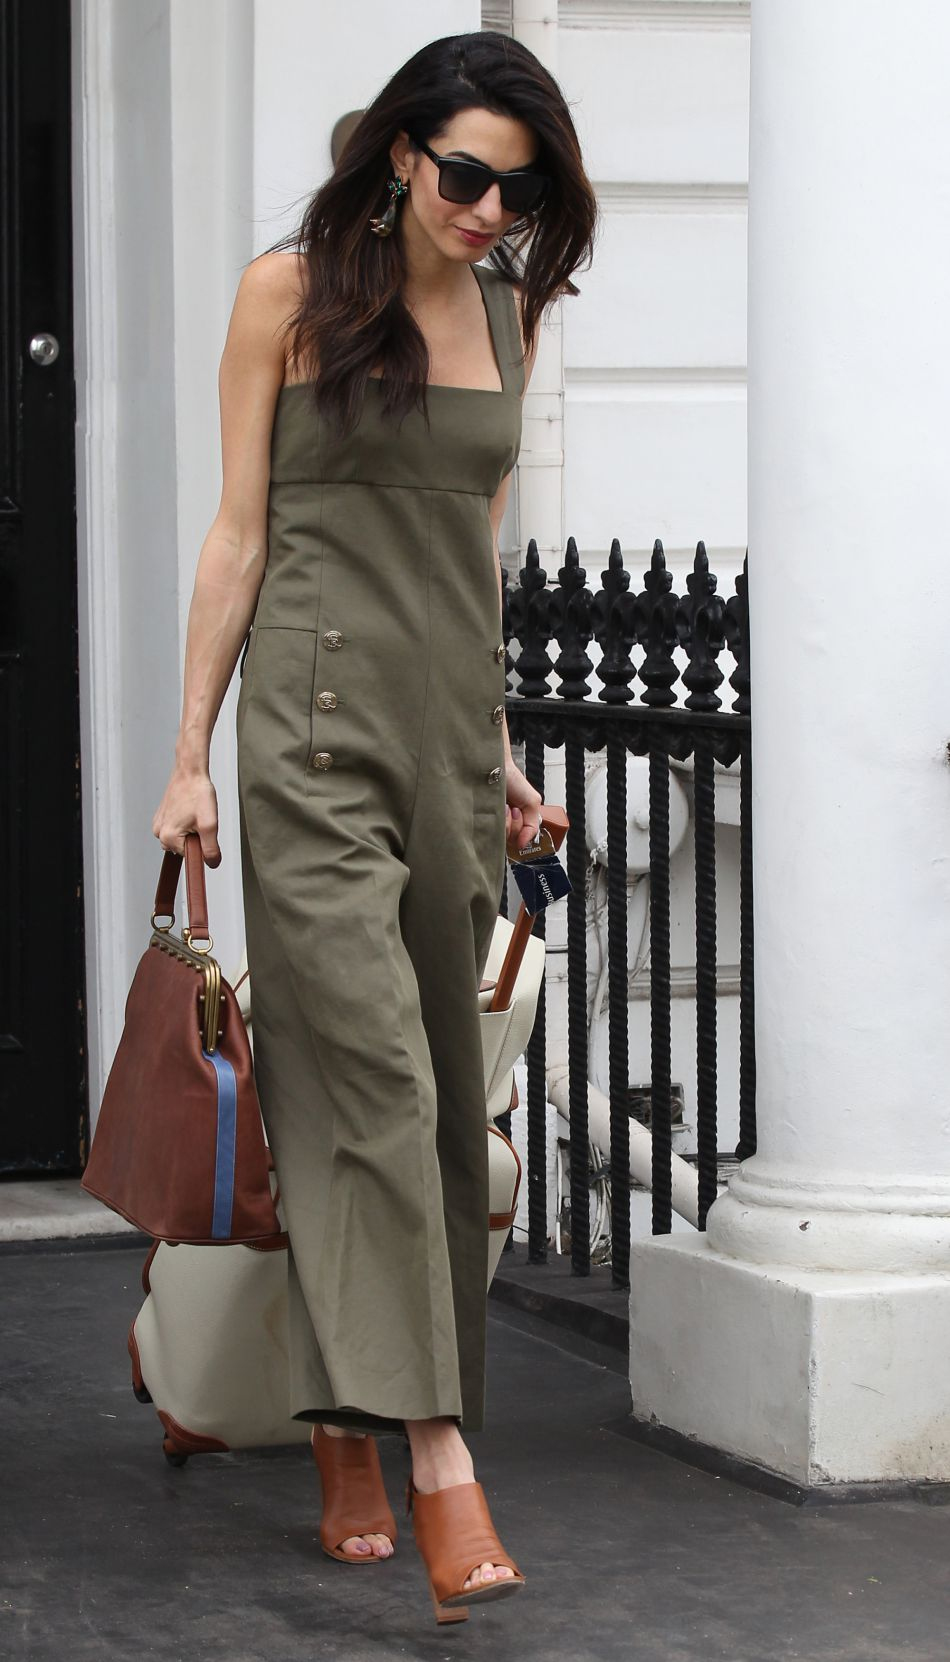 en combinaison kaki et sandales ouvertes amal clooney fait preuve de modernisme et de pr cision. Black Bedroom Furniture Sets. Home Design Ideas